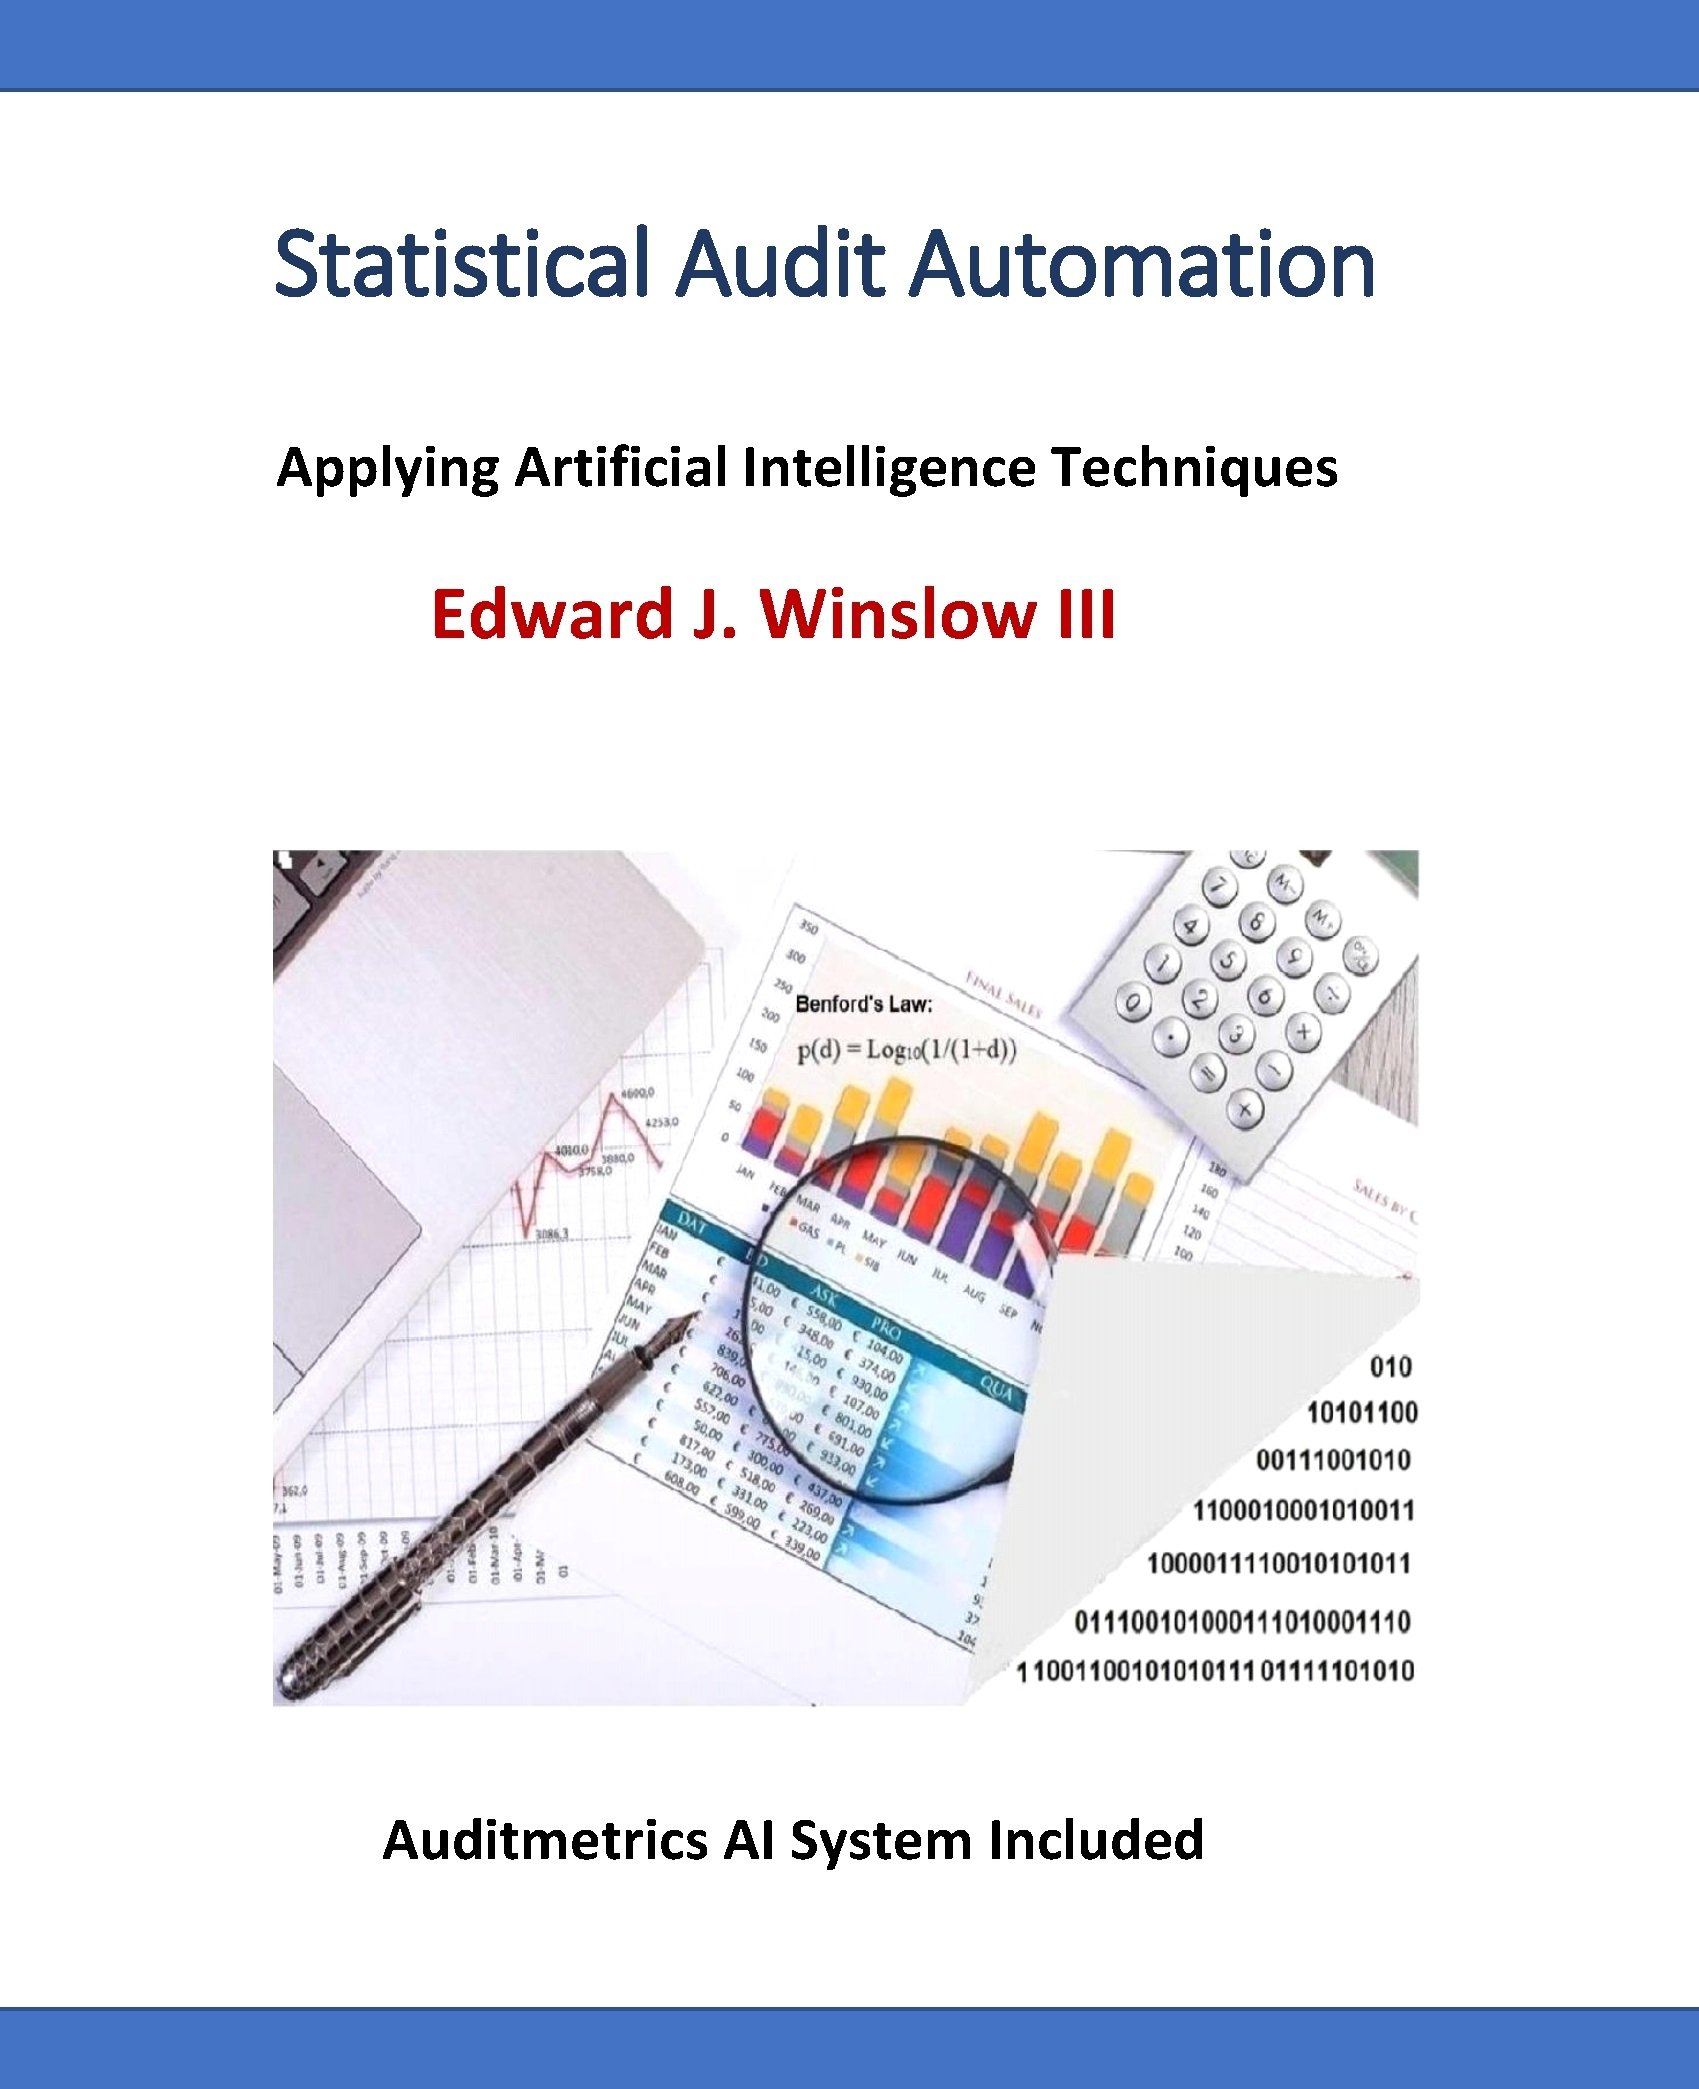 Statistical Audit Automation: Applying Artificial Intelligence Techniques